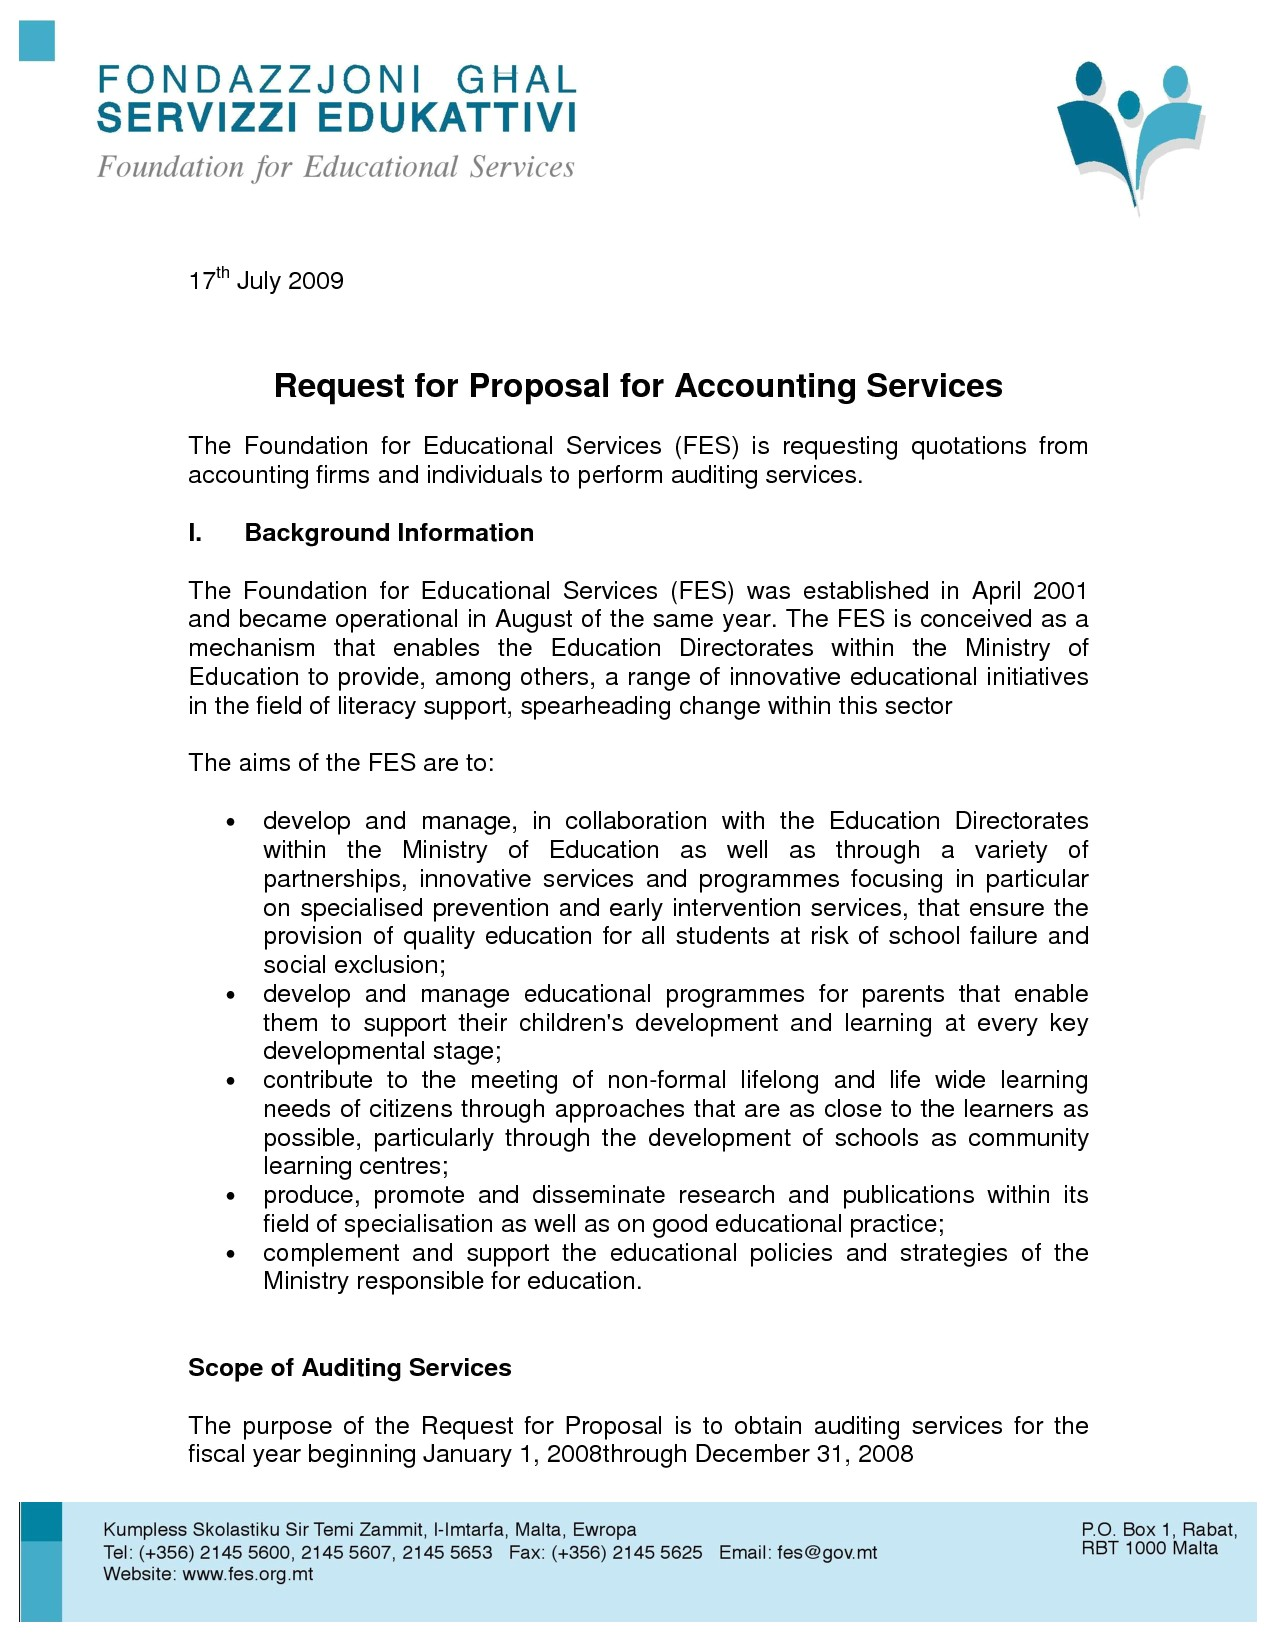 8 proposal for services